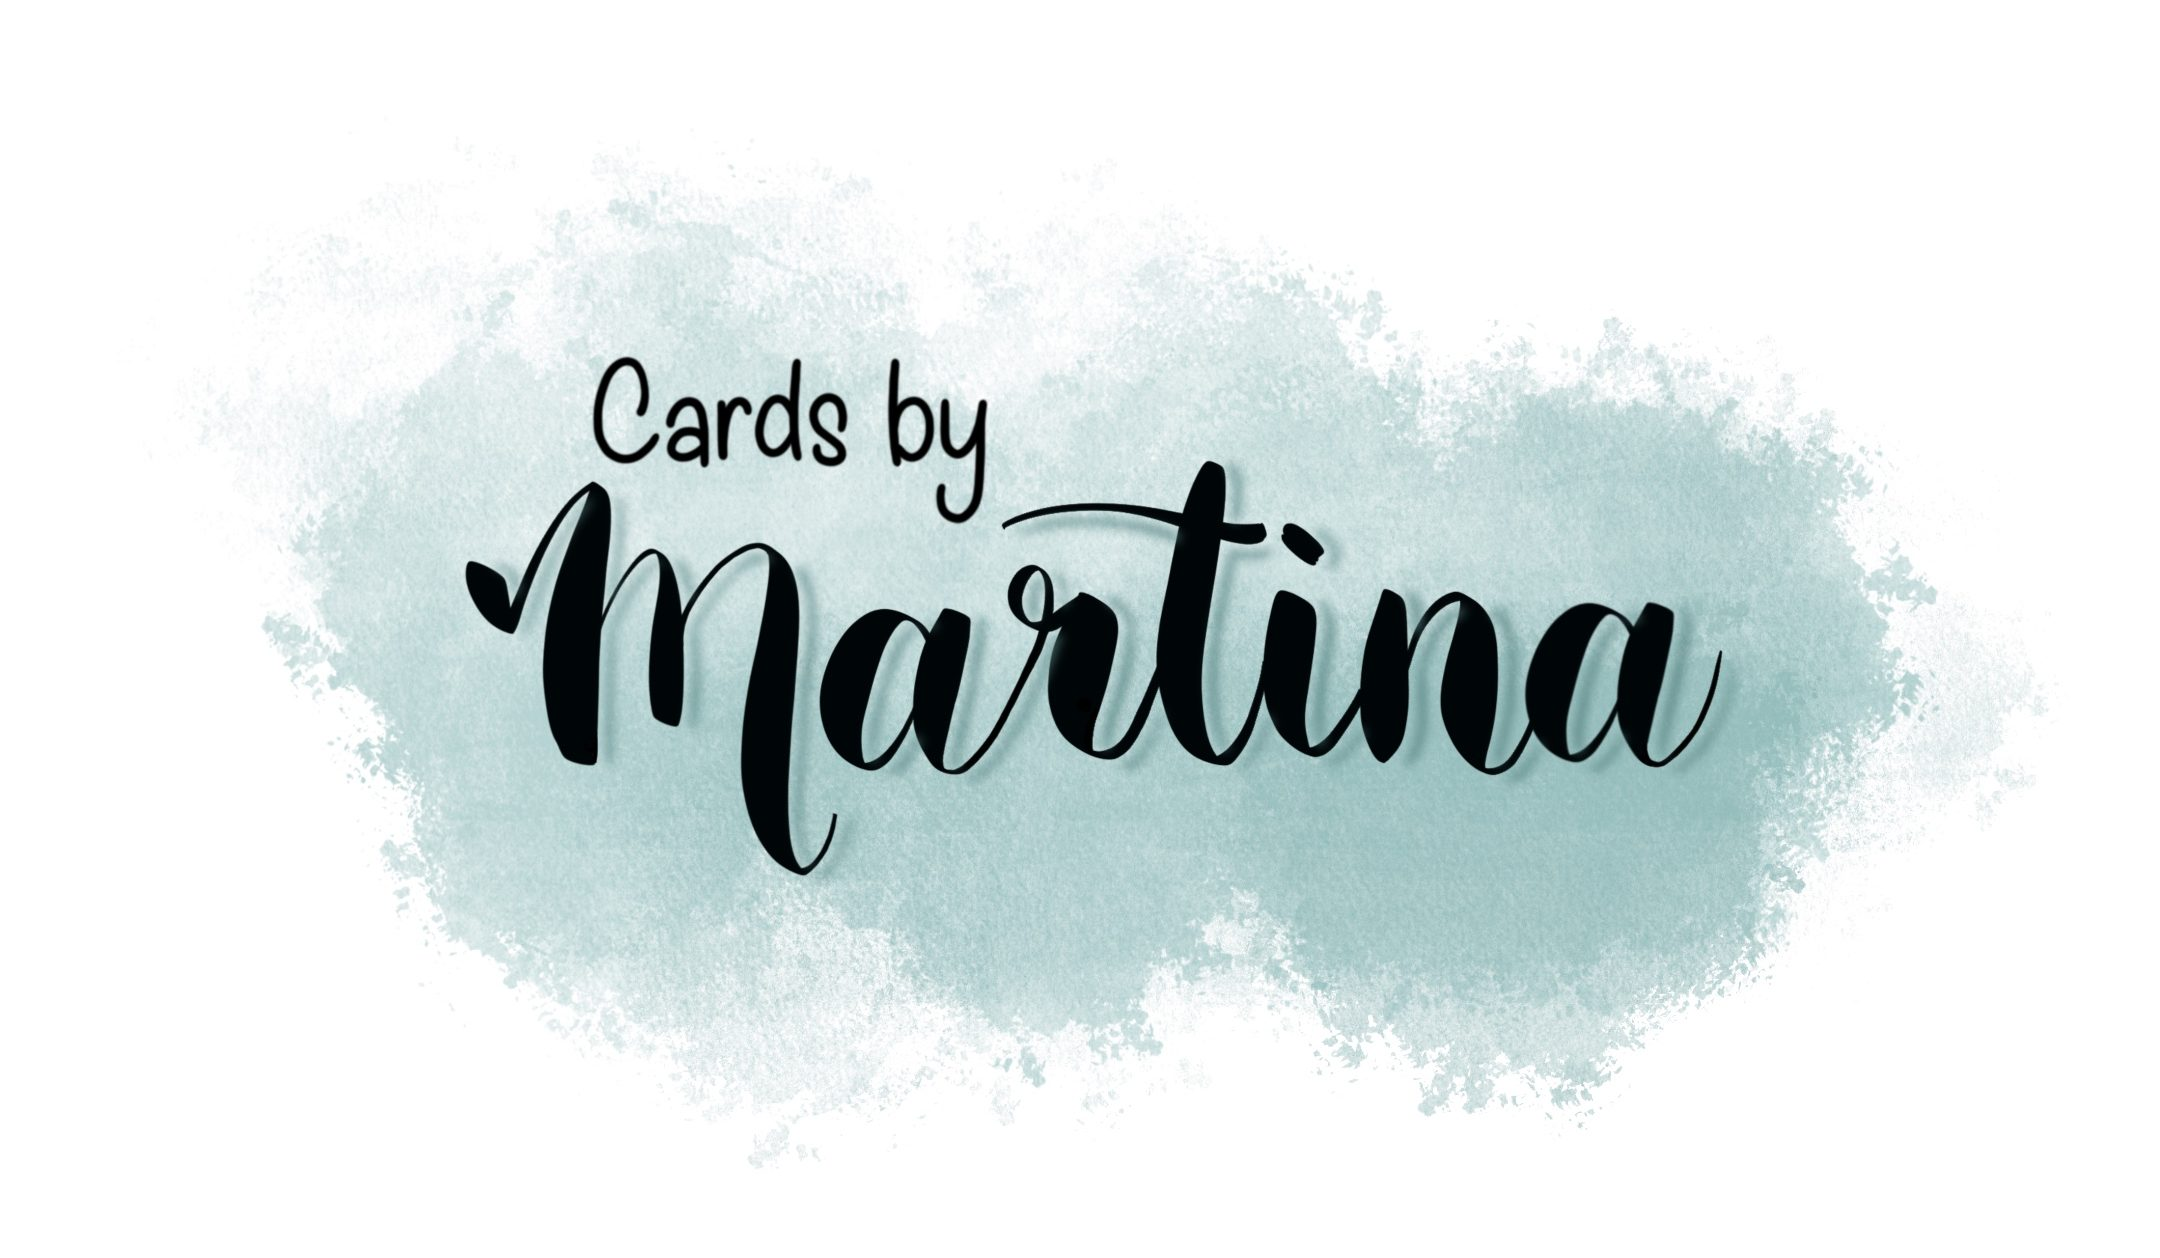 Cards by Martina